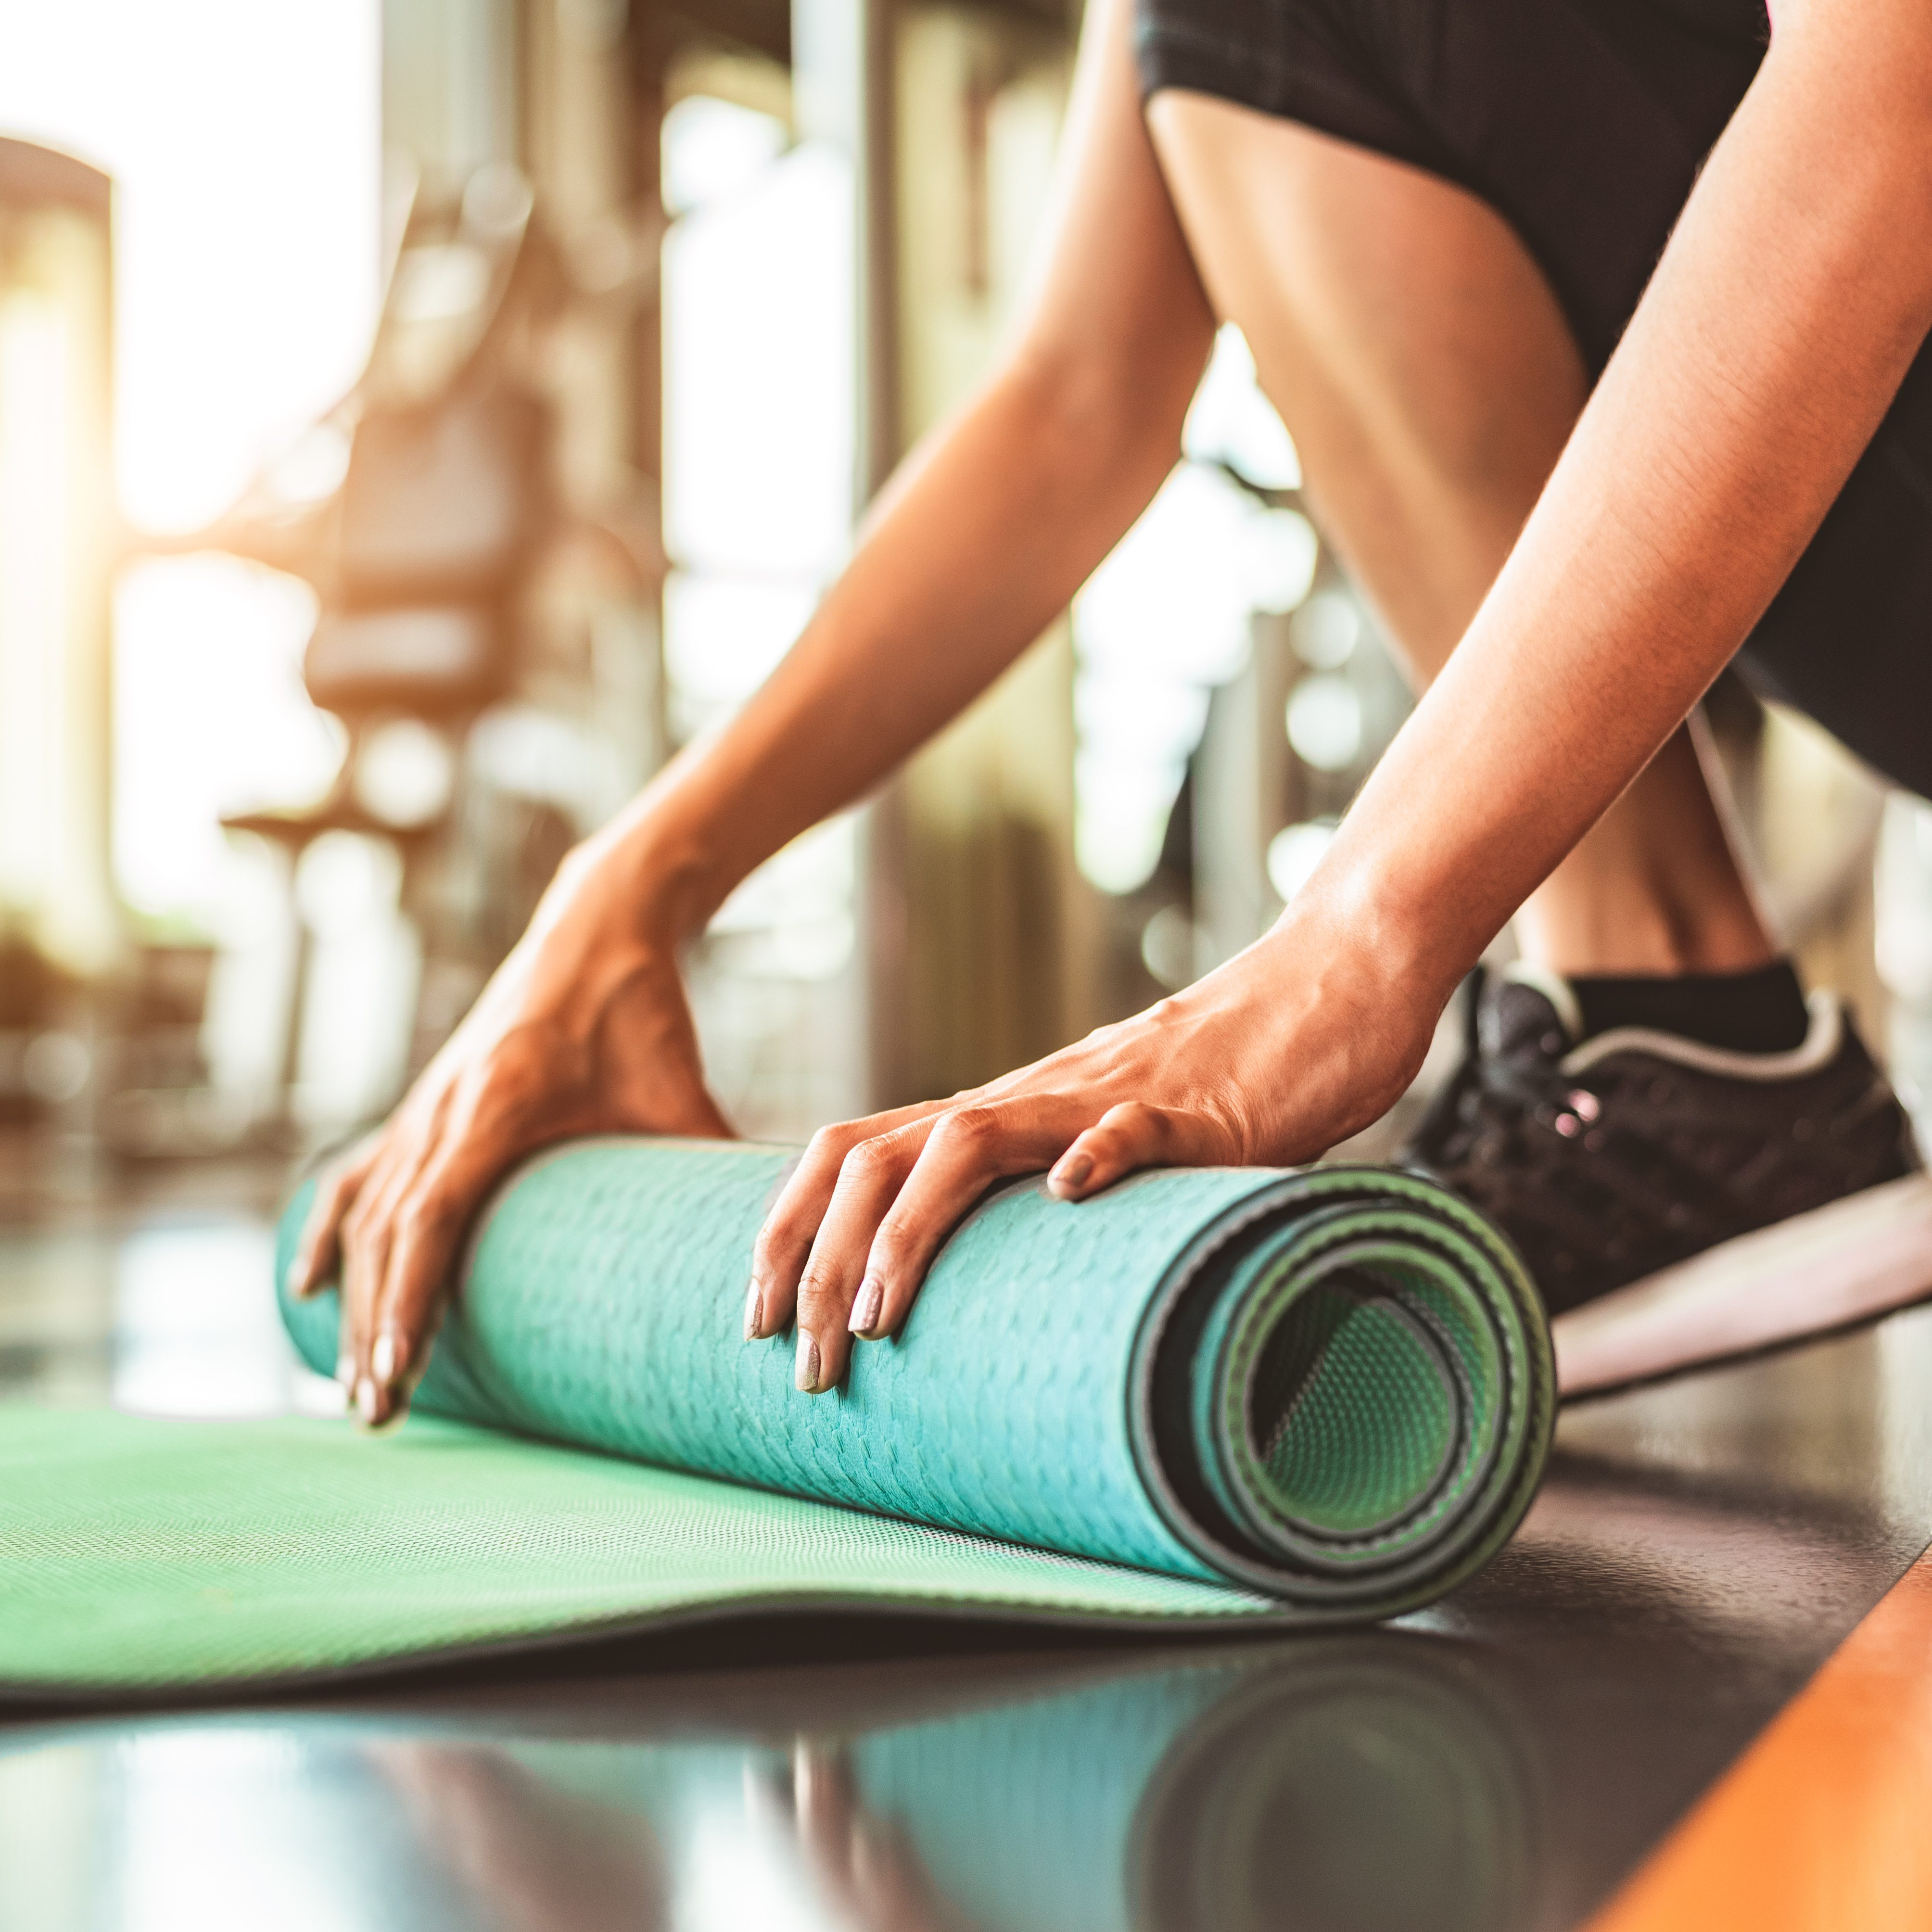 Close up of sporty woman folding yoga mattress in sport fitness gym training center background. Exercise mat rolling keeping after yoga class. Workout and sport training concept. Hands on carpet